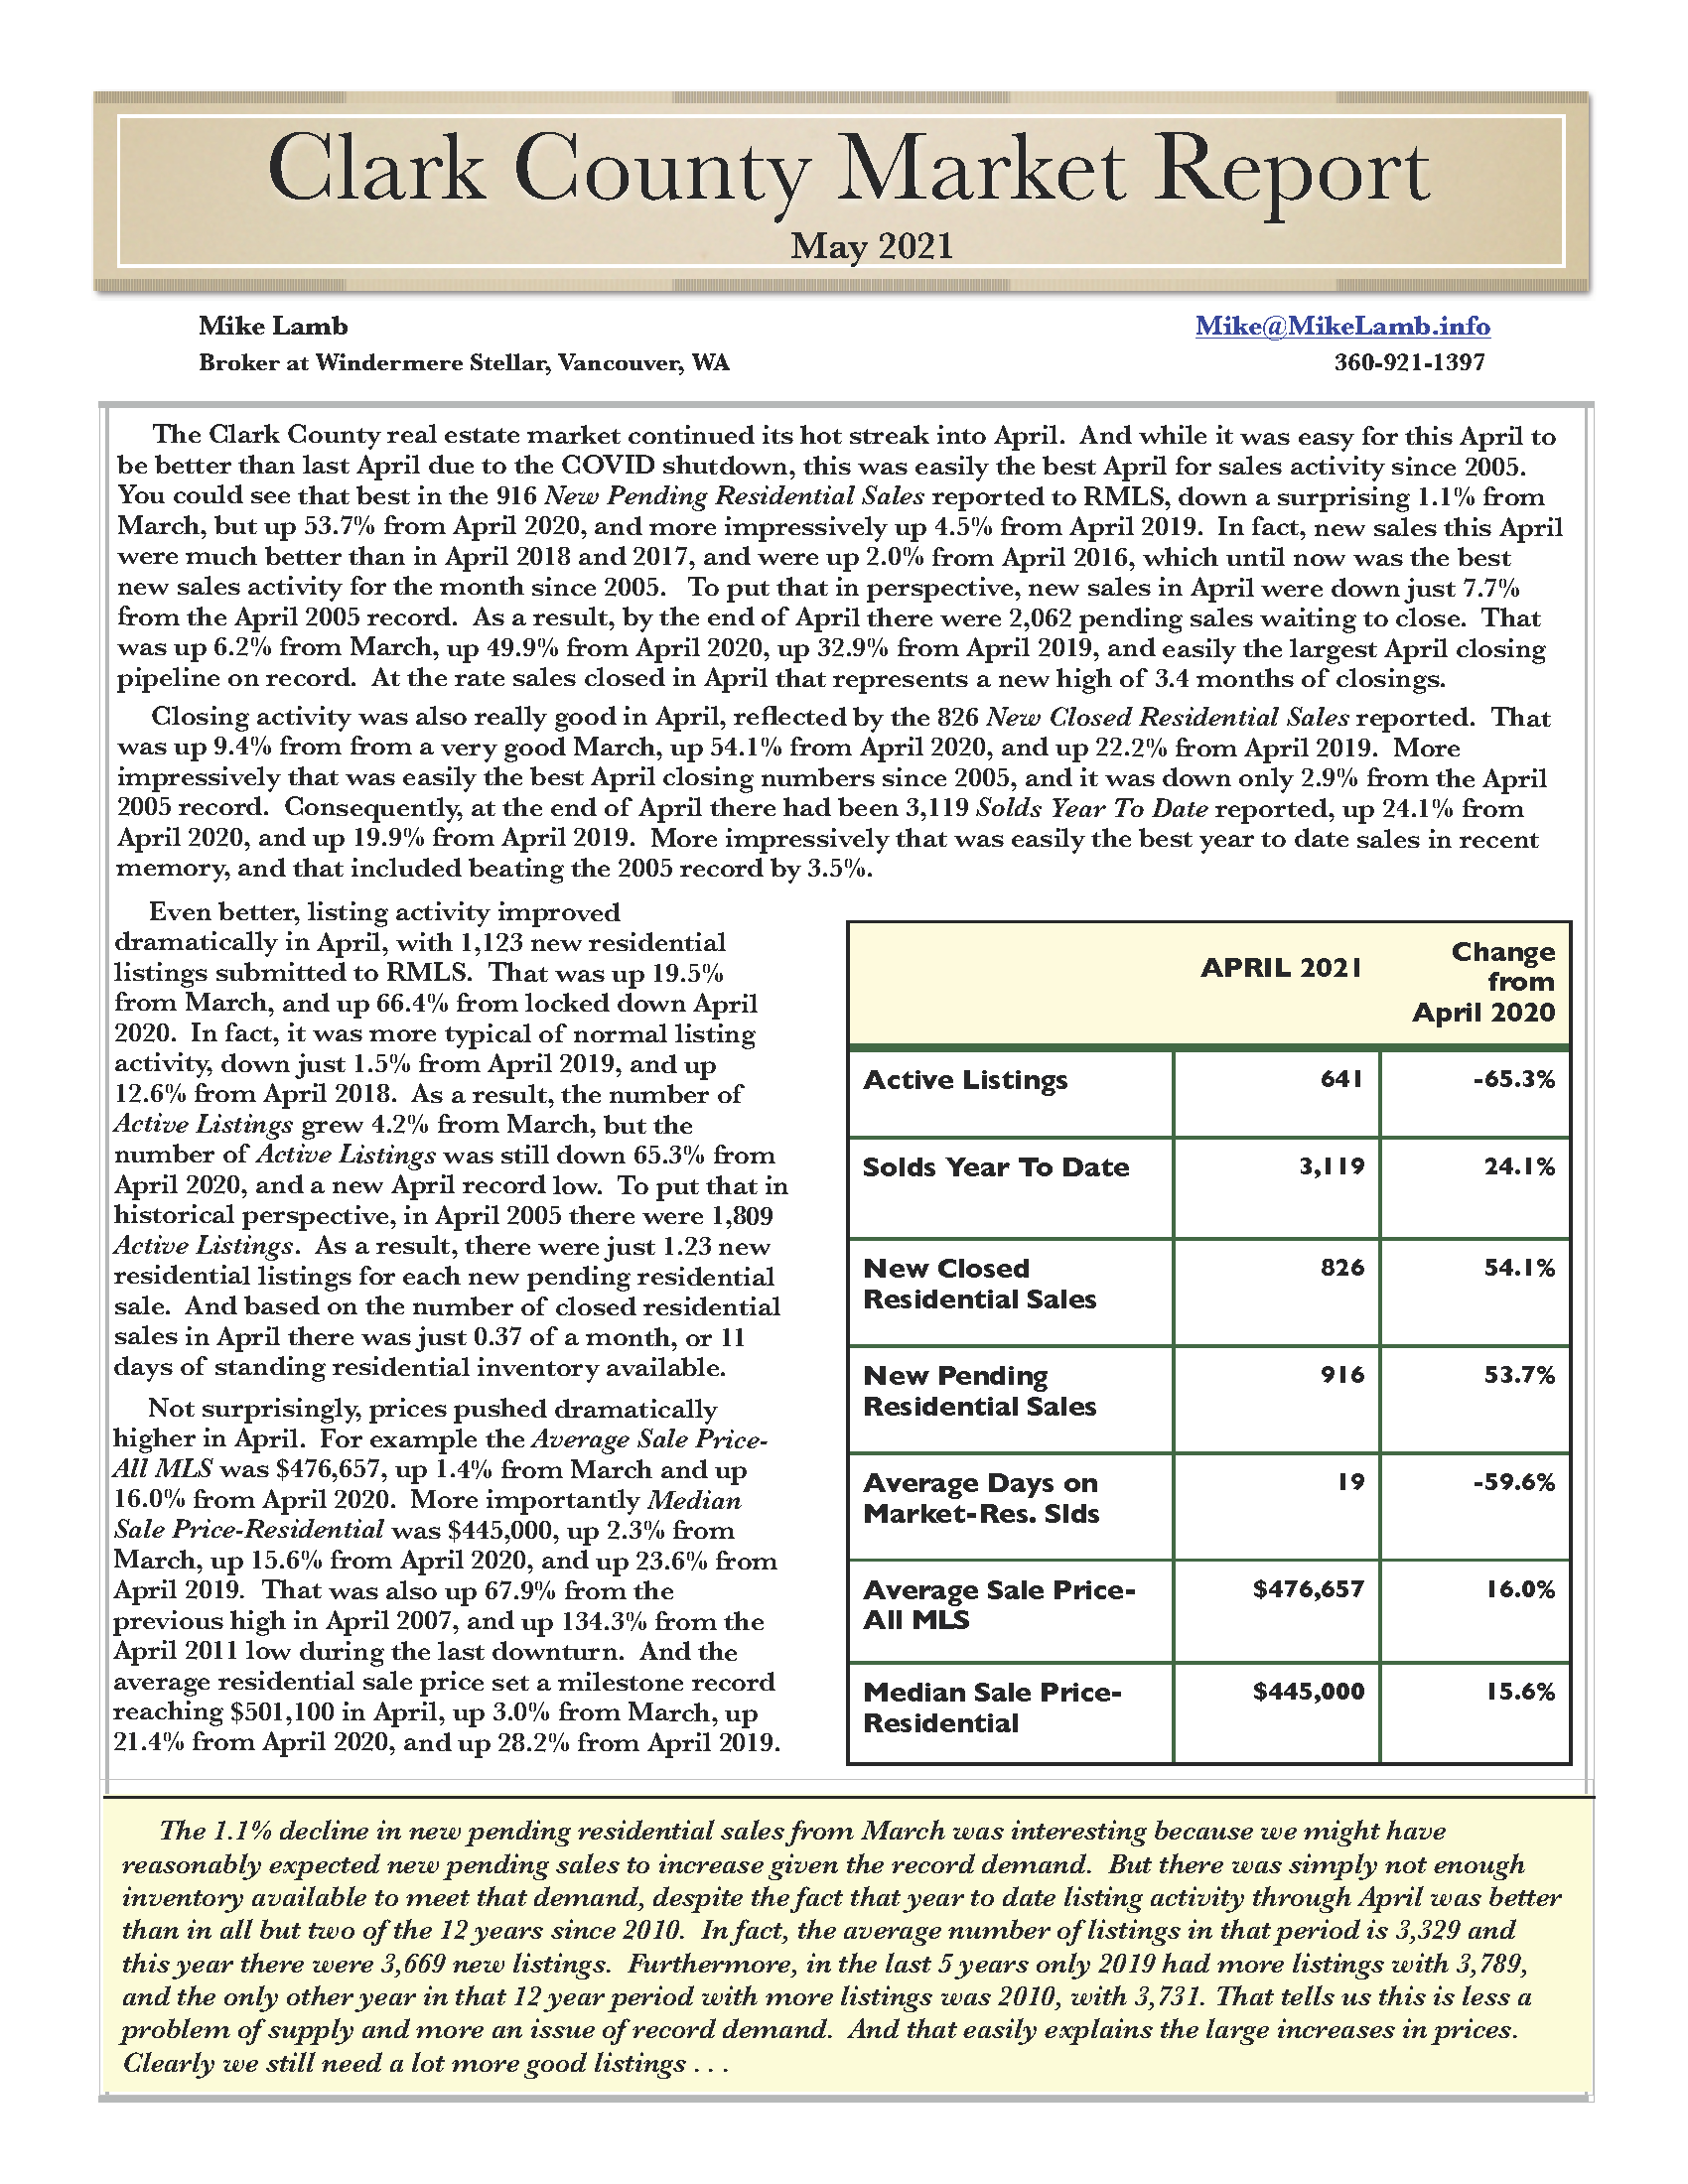 May 2021 Clark County Market Report by Mike Lamb